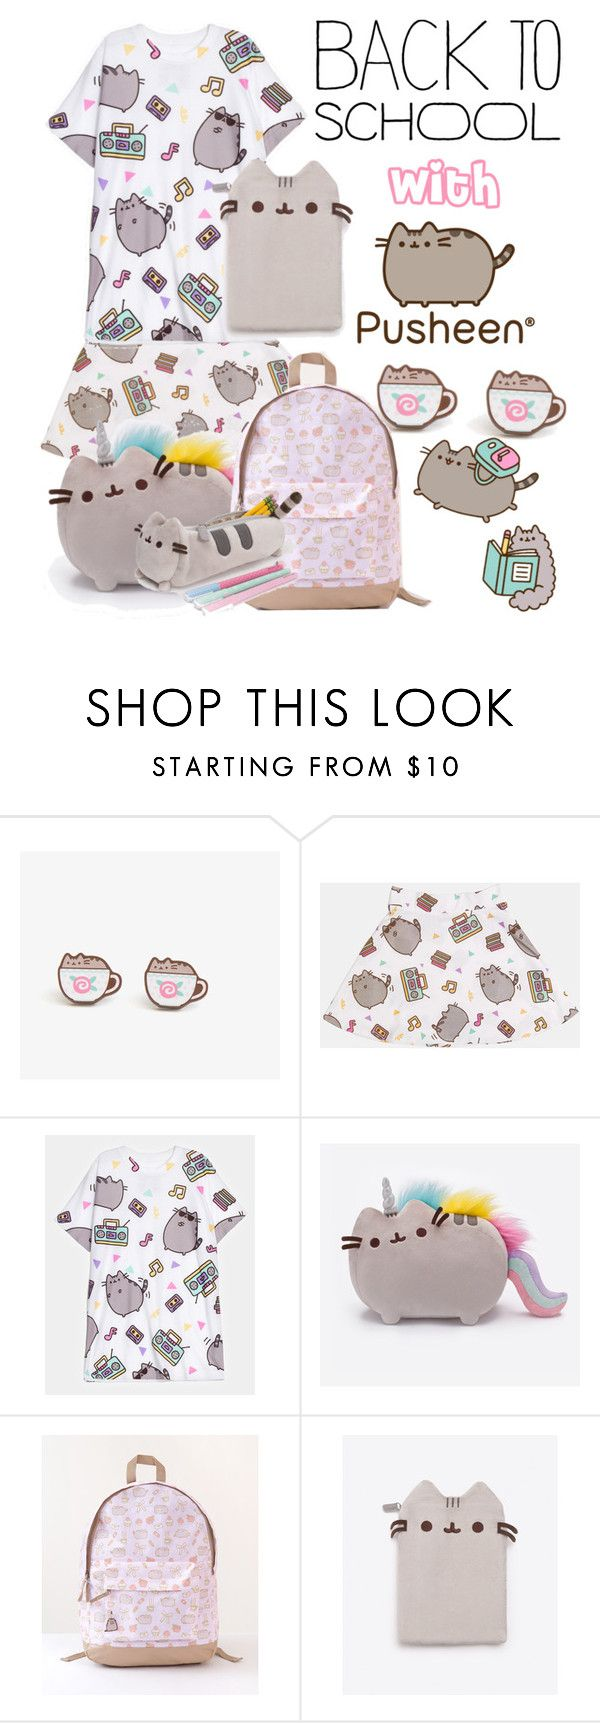 """""""#PVxPusheen Going back to school Pusheen style."""" by sarah-michelle-thompson ❤ liked on Polyvore featuring Pusheen, contestentry and PVxPusheen"""